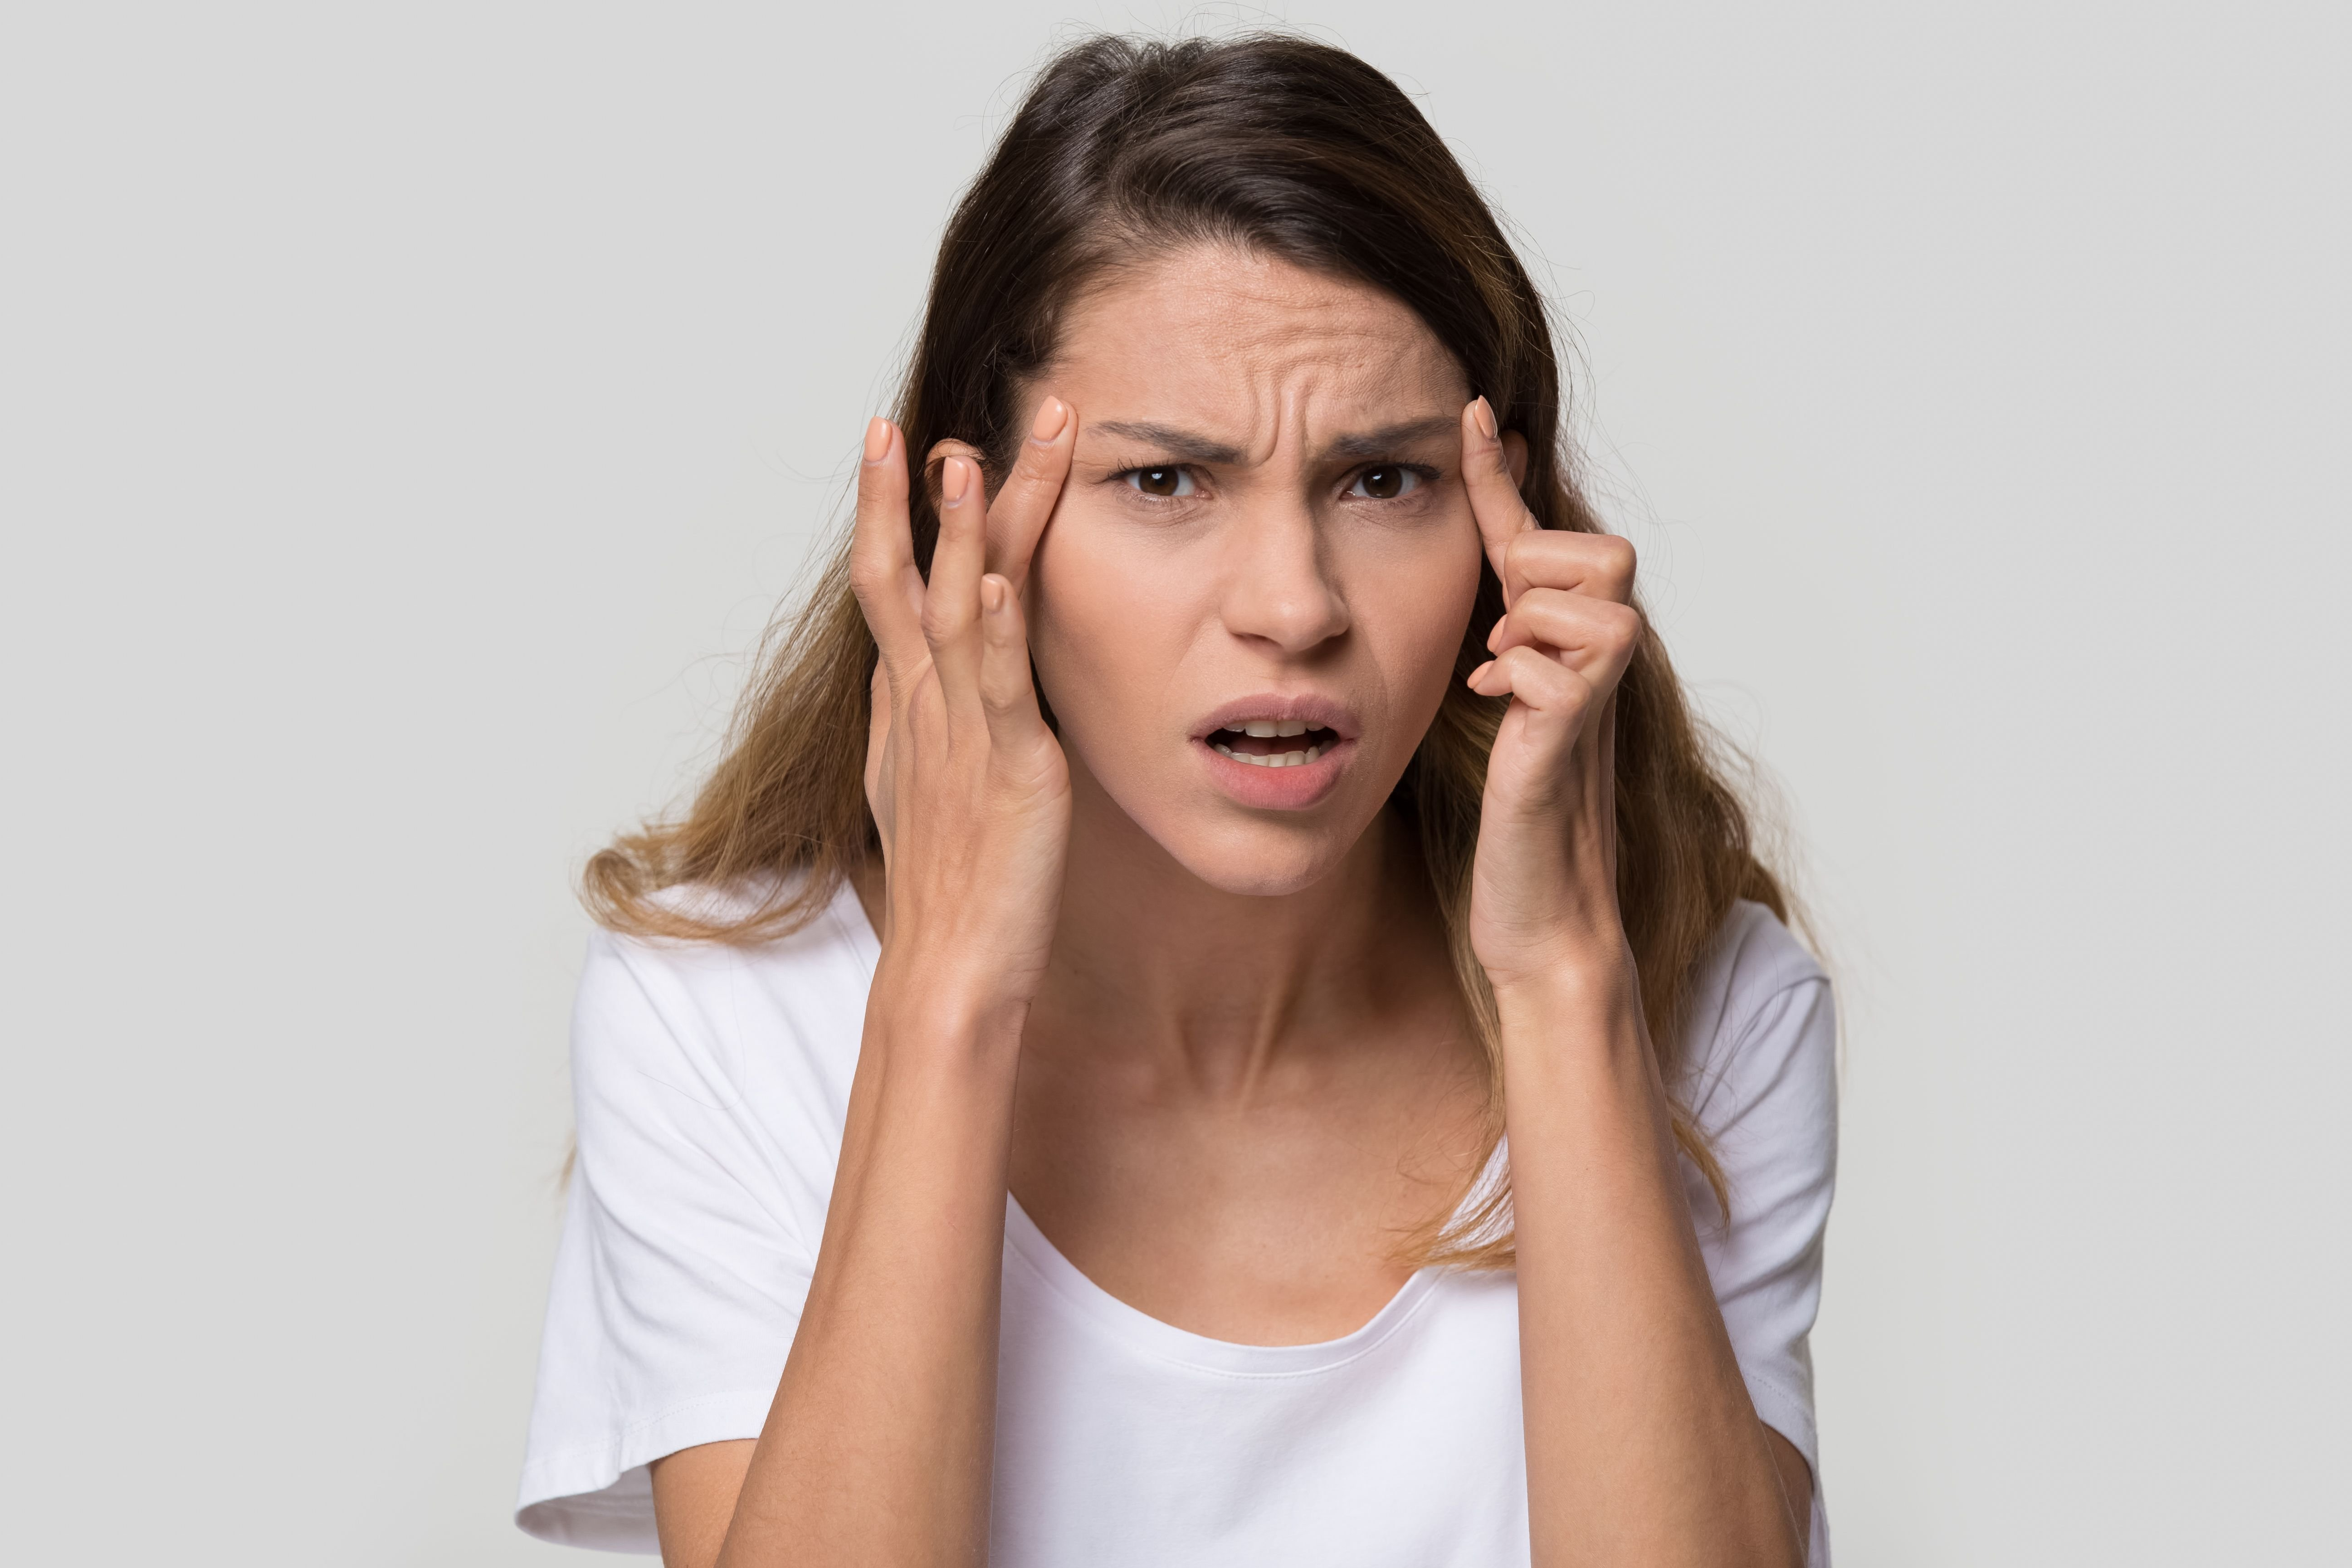 A woman fed up while holding her face. | Source: Shutterstock